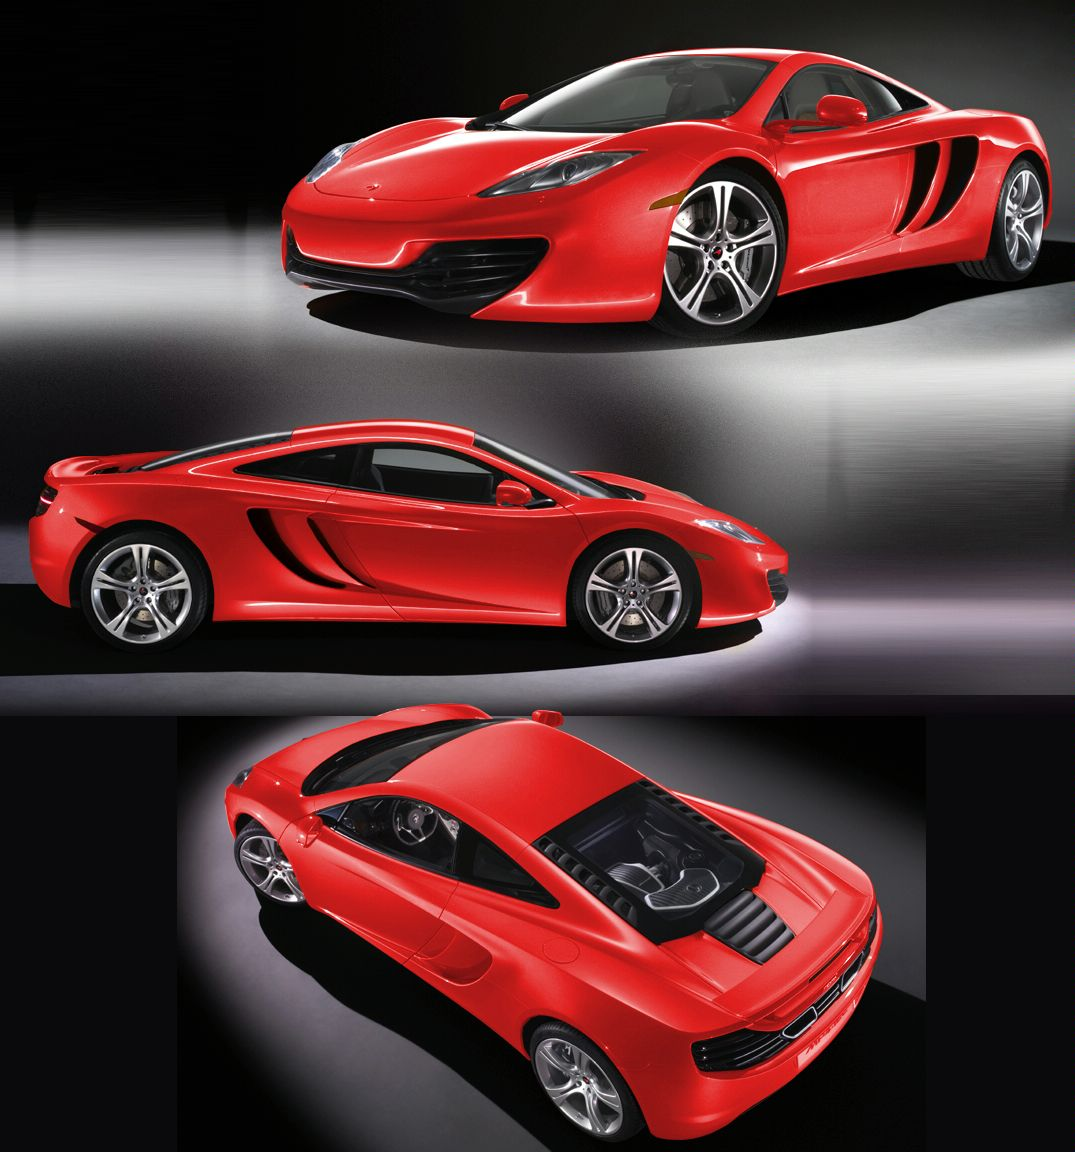 2010 McLaren MP4-12C Rainbow Colors